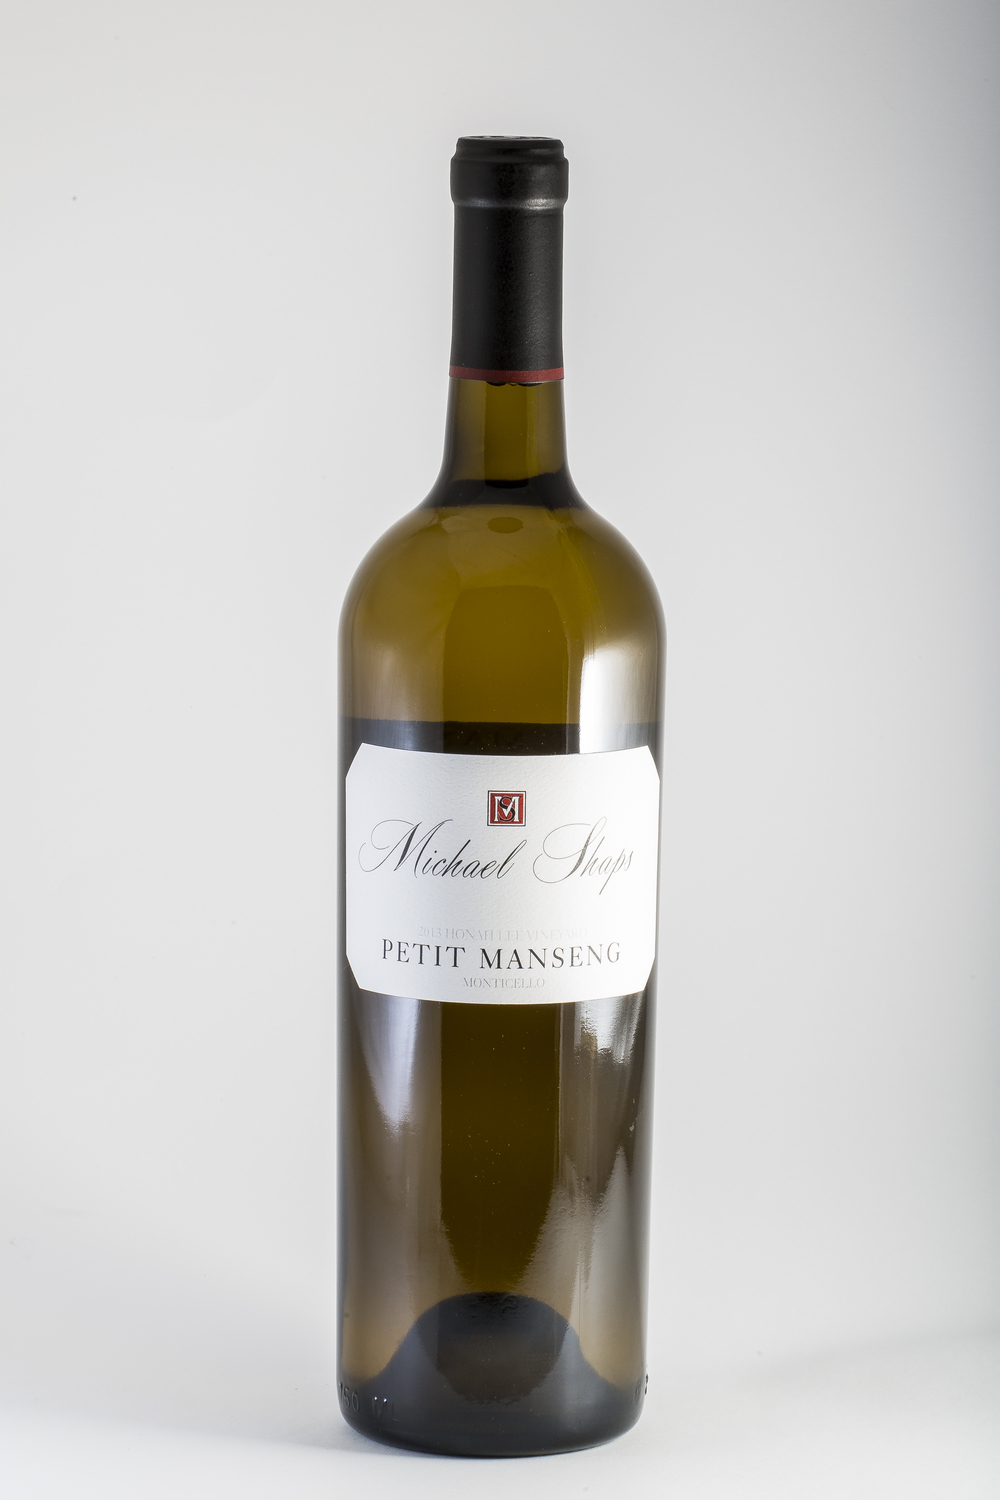 Michael Shaps Petit Manseng 2014 $30 Our Petit Manseng 2014 won a Gold medal at the 2016 Governor's Cup wine competition and was also chosen for the Governor's case. From the Honah Lee vineyard, this is fermented mostly in French oak barrels, one-third new, with a small percentage in stainless steel tank, and was bottled after six months of aging with no malolactic fermentation. It is bone dry, but brimming with the sweetness of  tropical fruit notes, and is full bodied and very concentrated. Made possible by our unique growing conditions, this style of wine is specific to Petit Manseng grown in central Virginia.